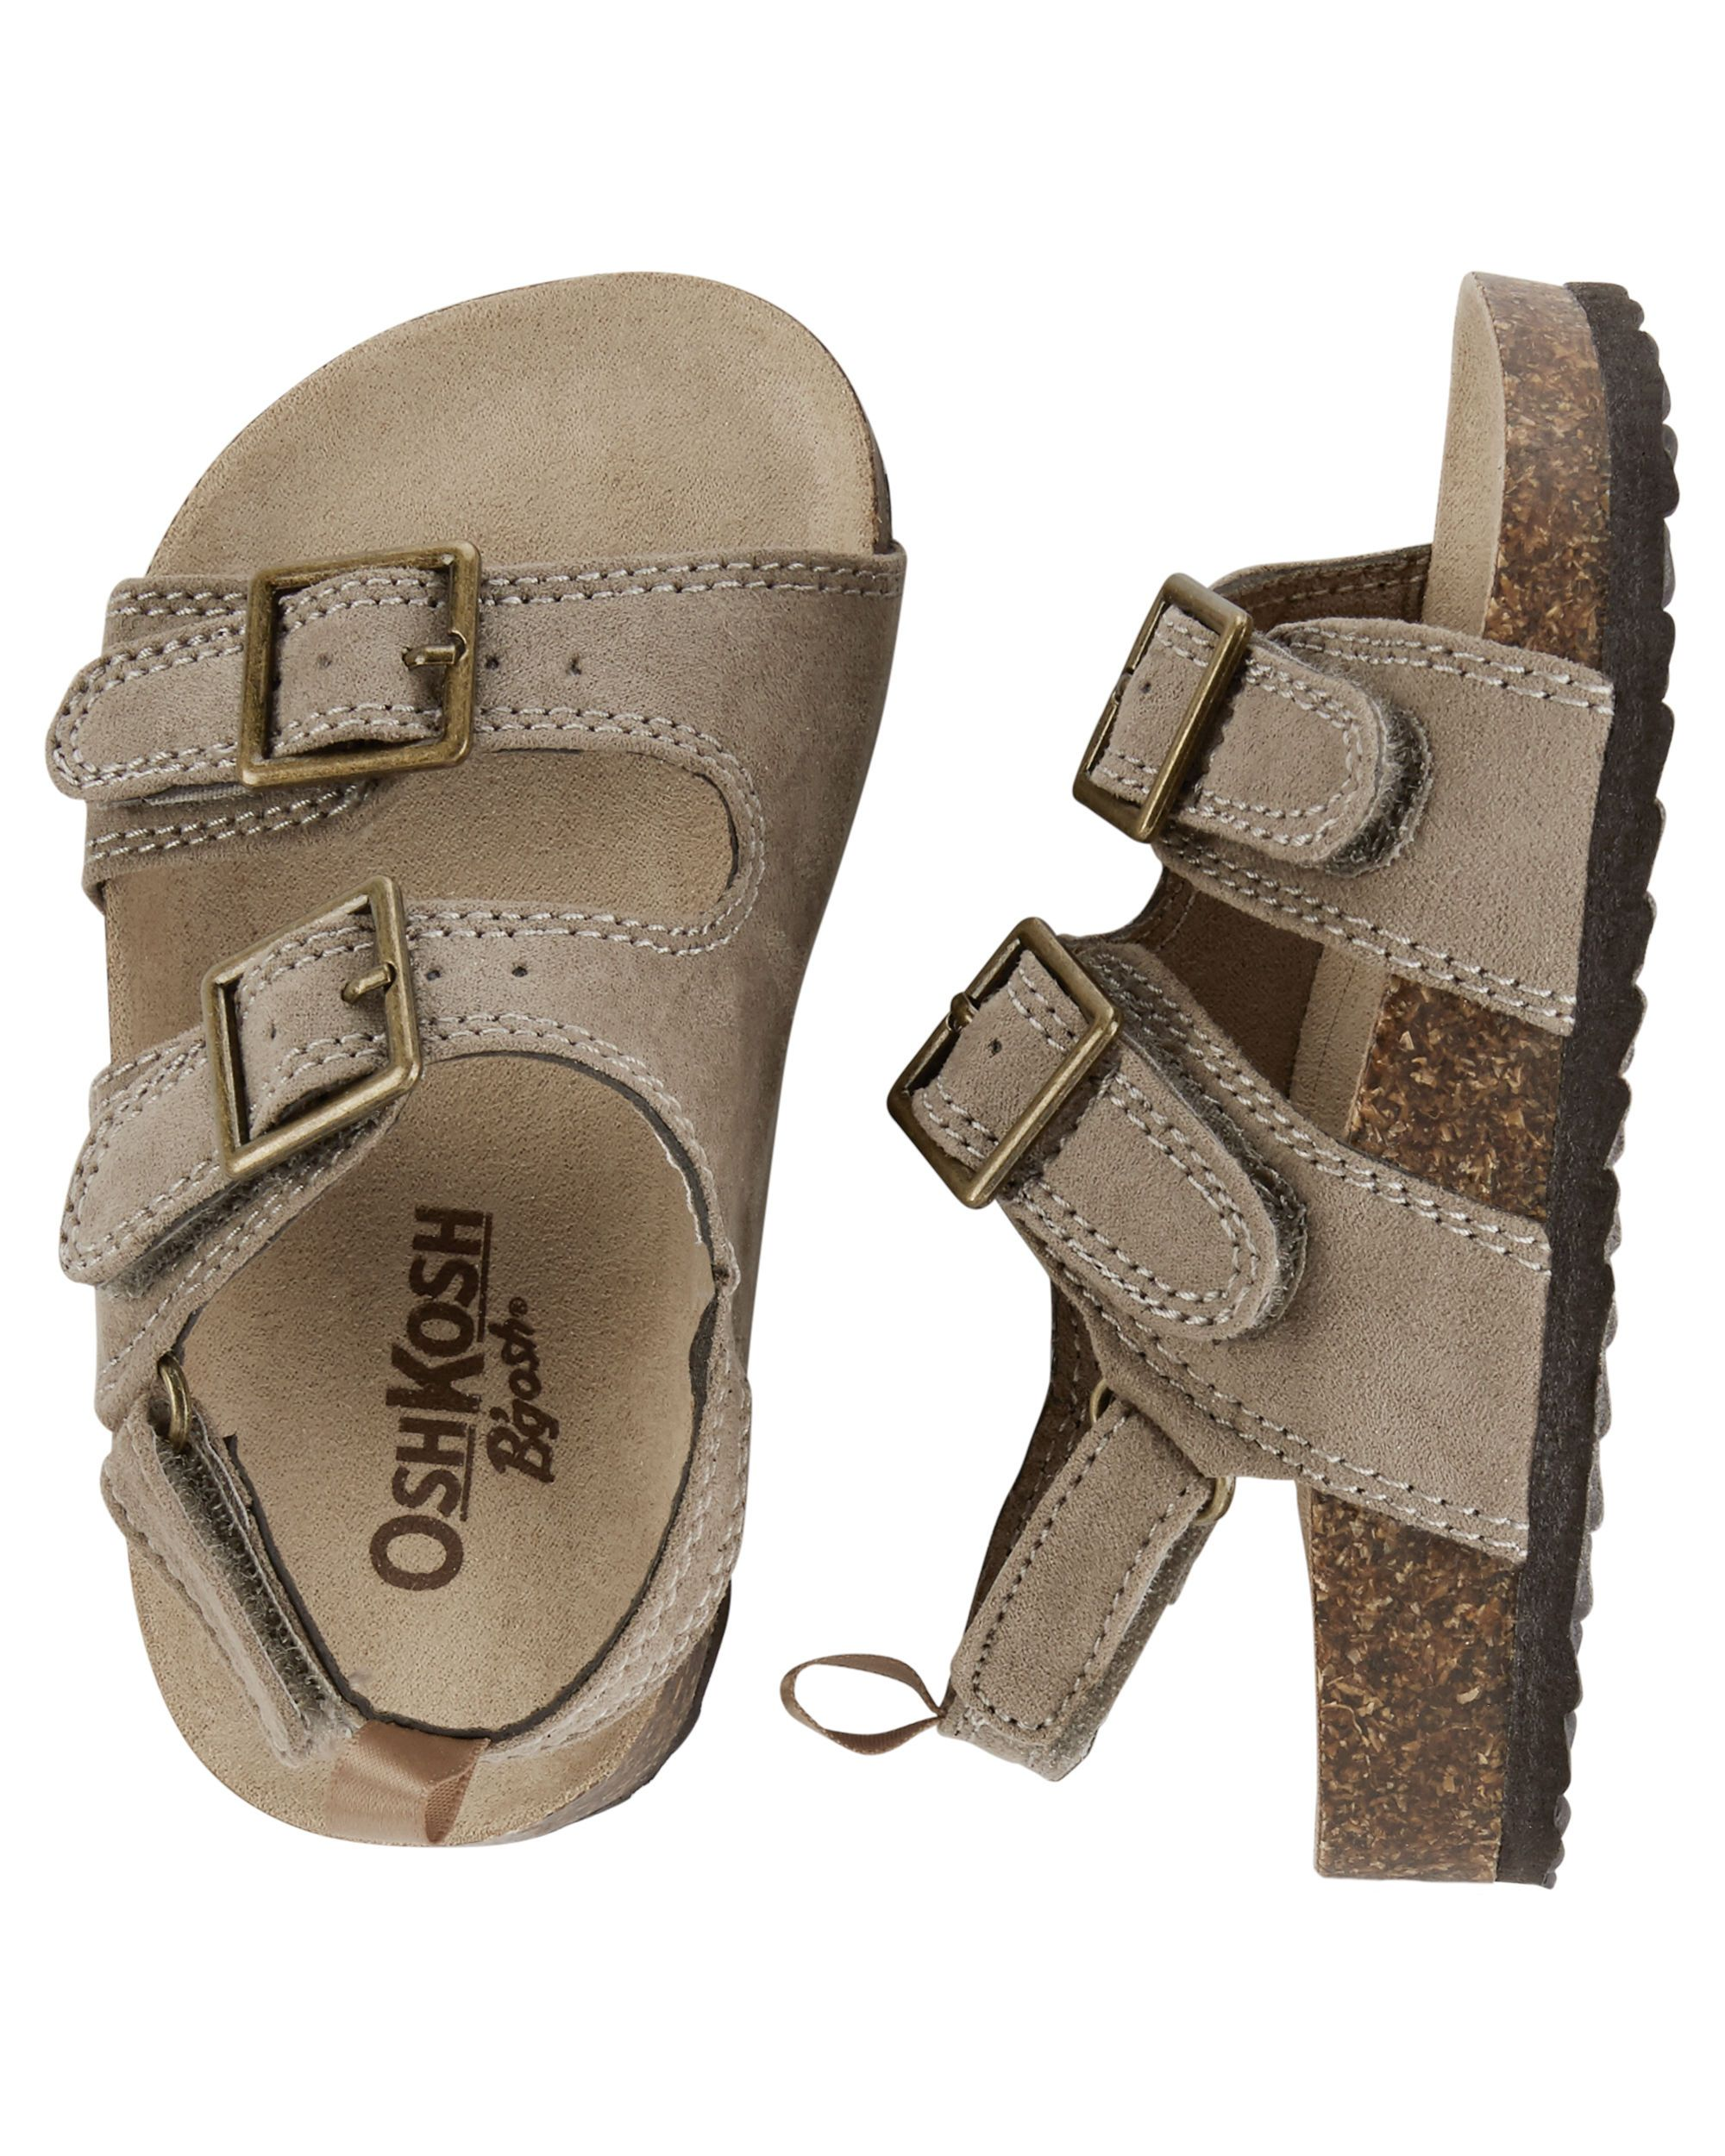 Buckle Sandals Baby Girl Shoes Toddler Boy Outfits